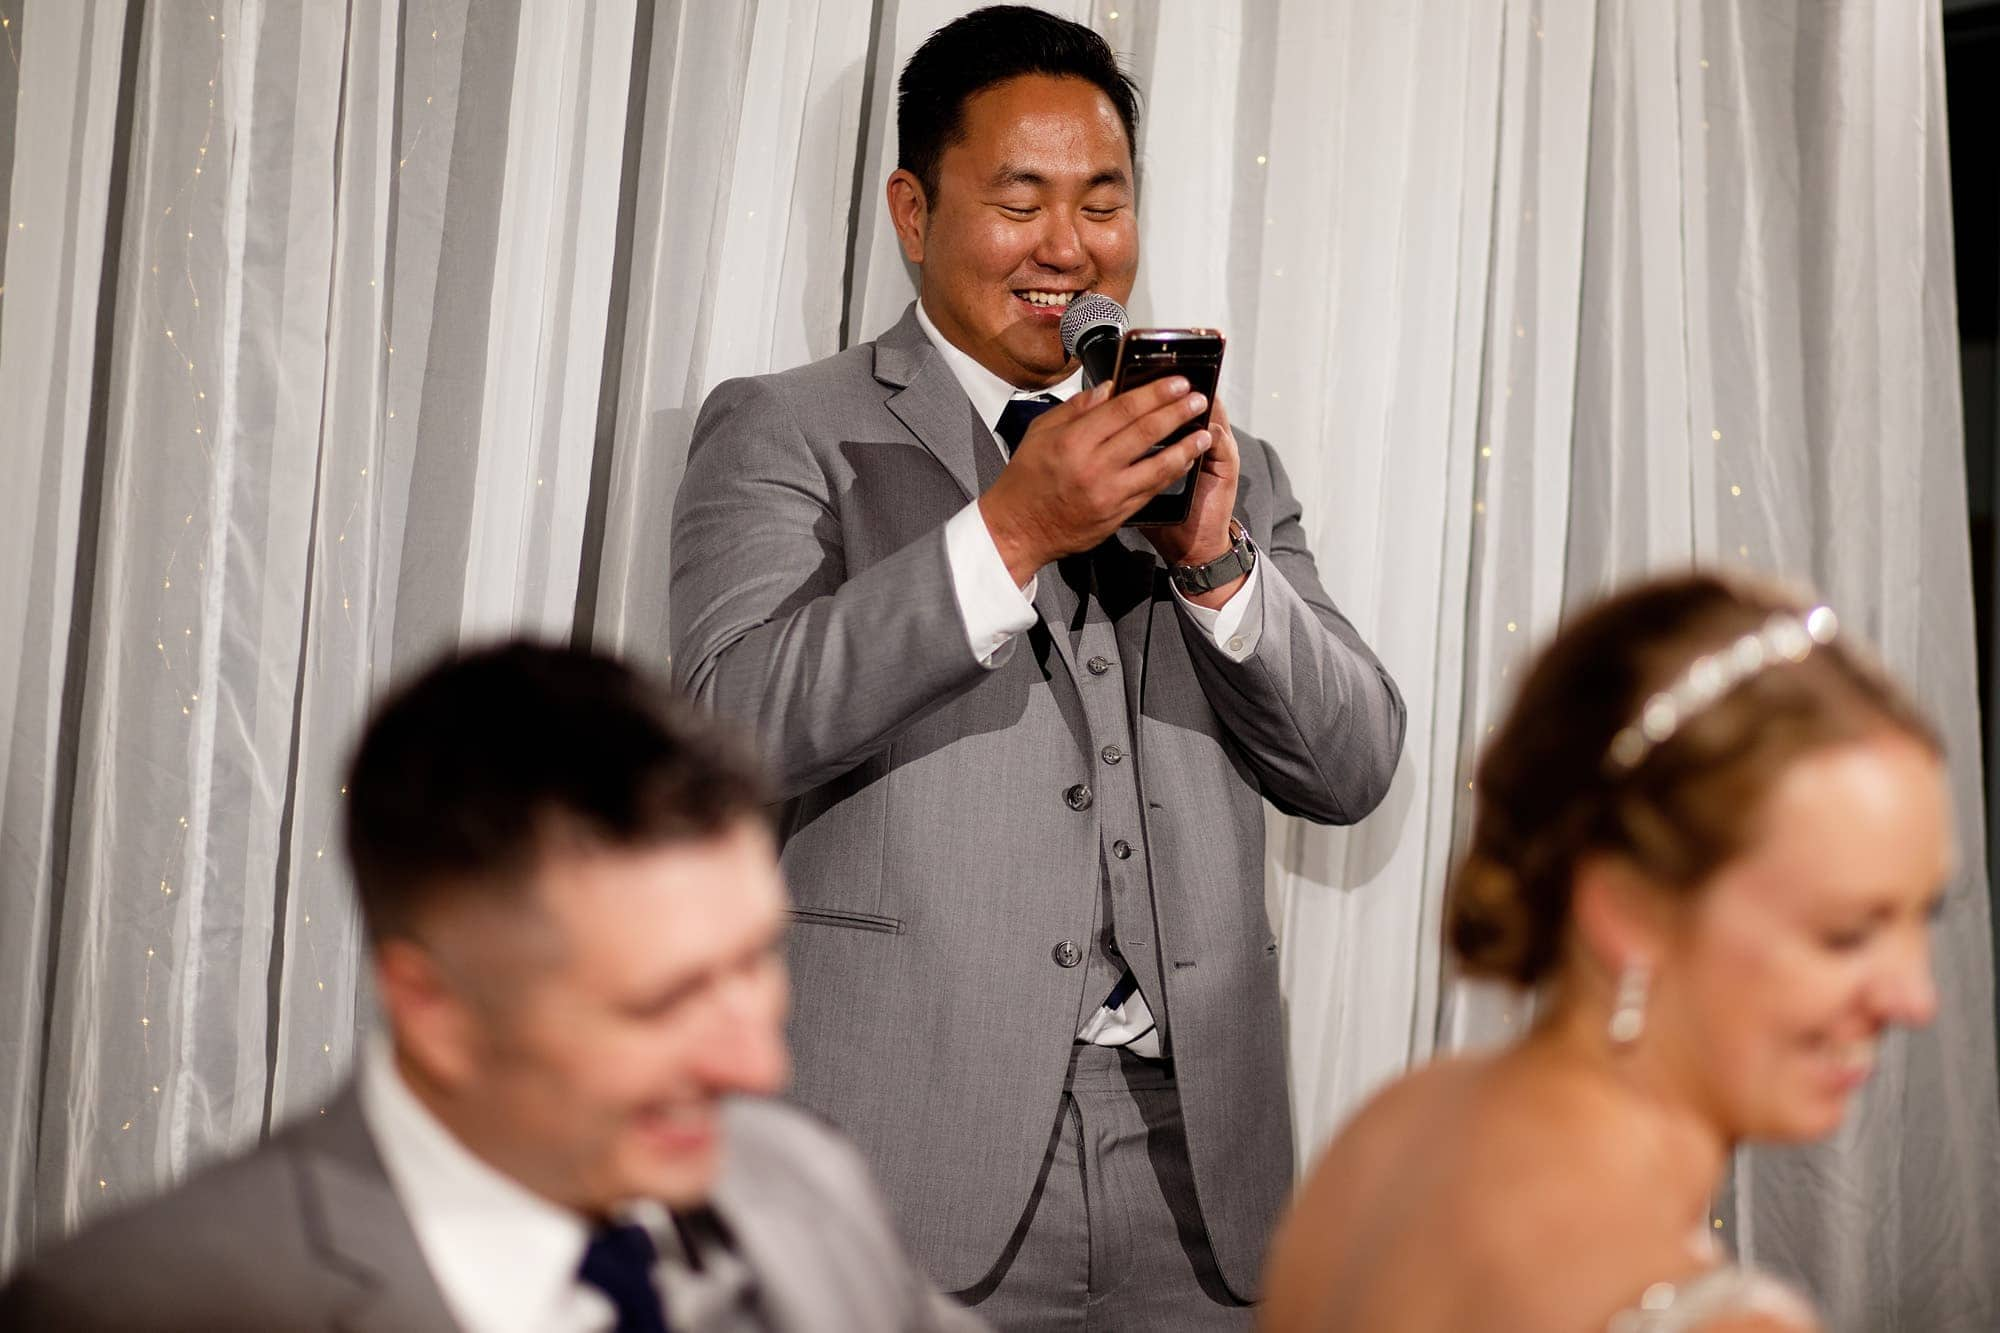 A groomsman shares a speech